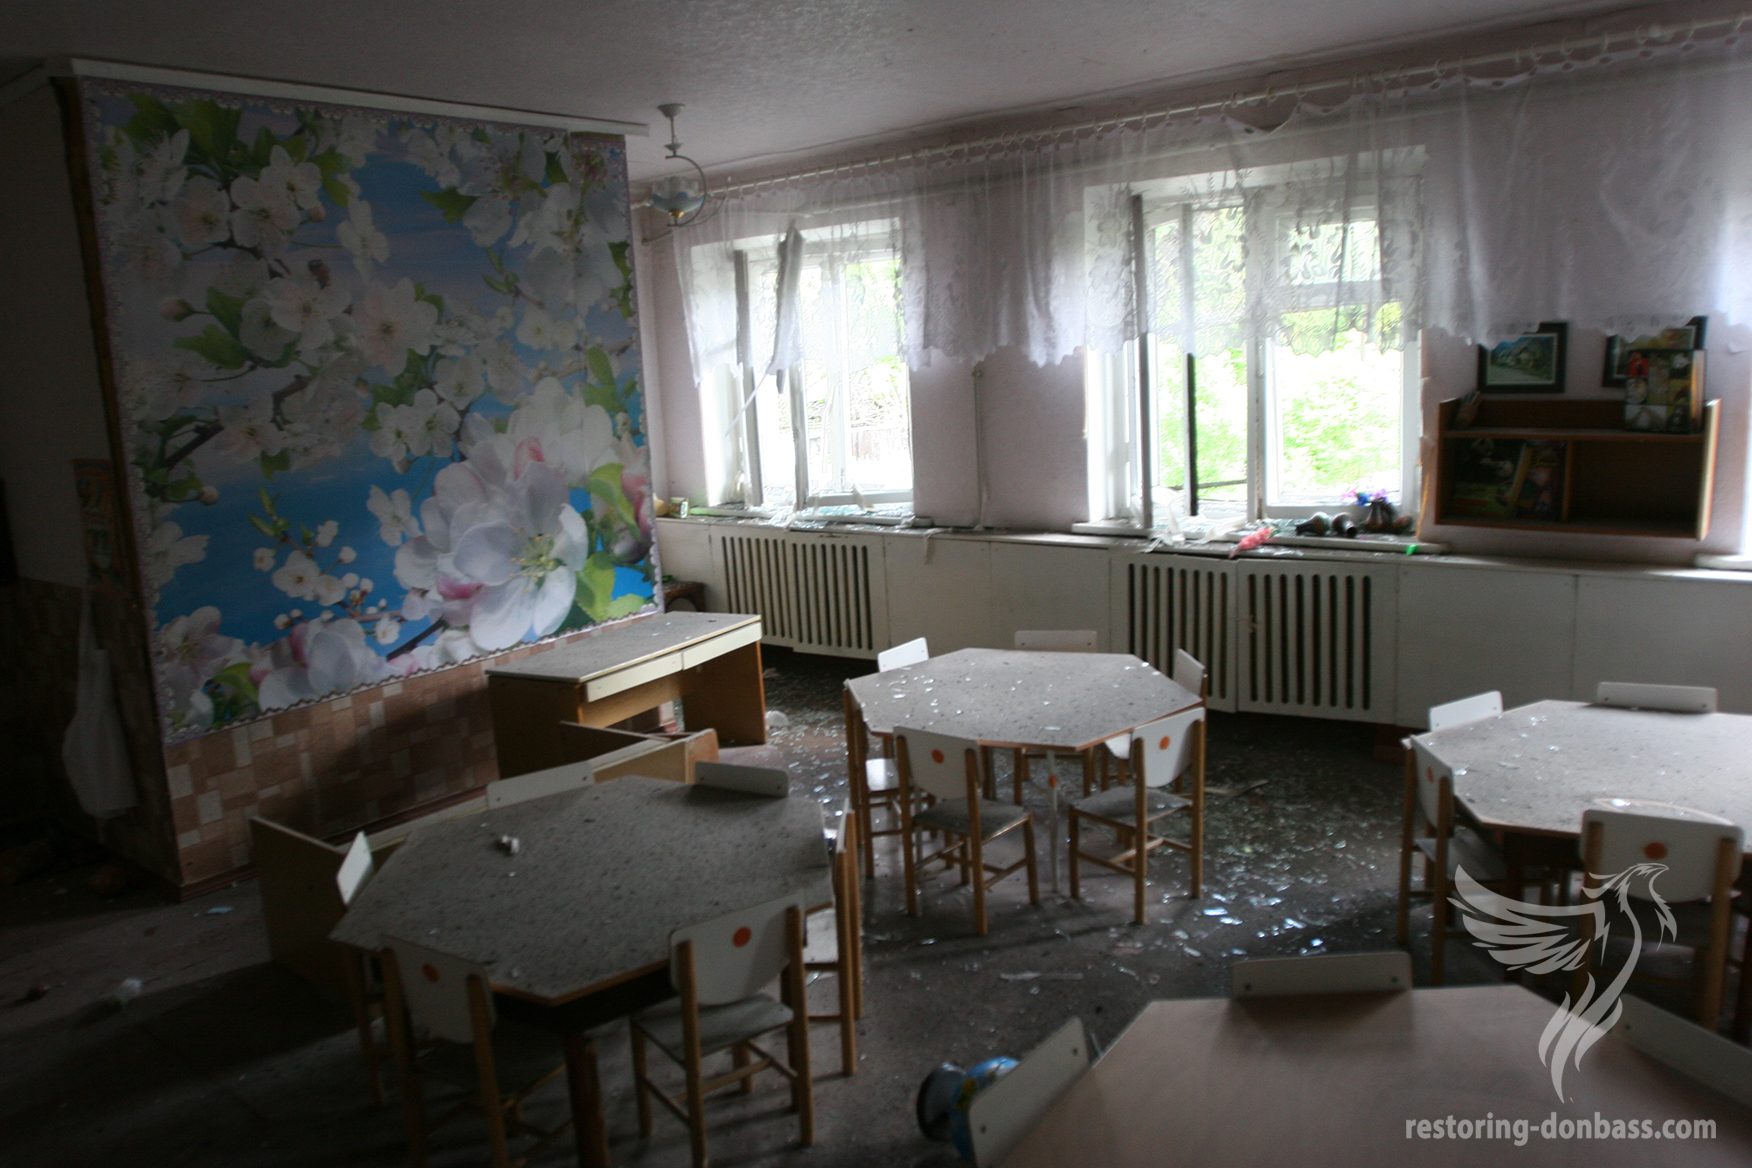 Result of kindergarten's shelling in Donetsk, May 3, 2015